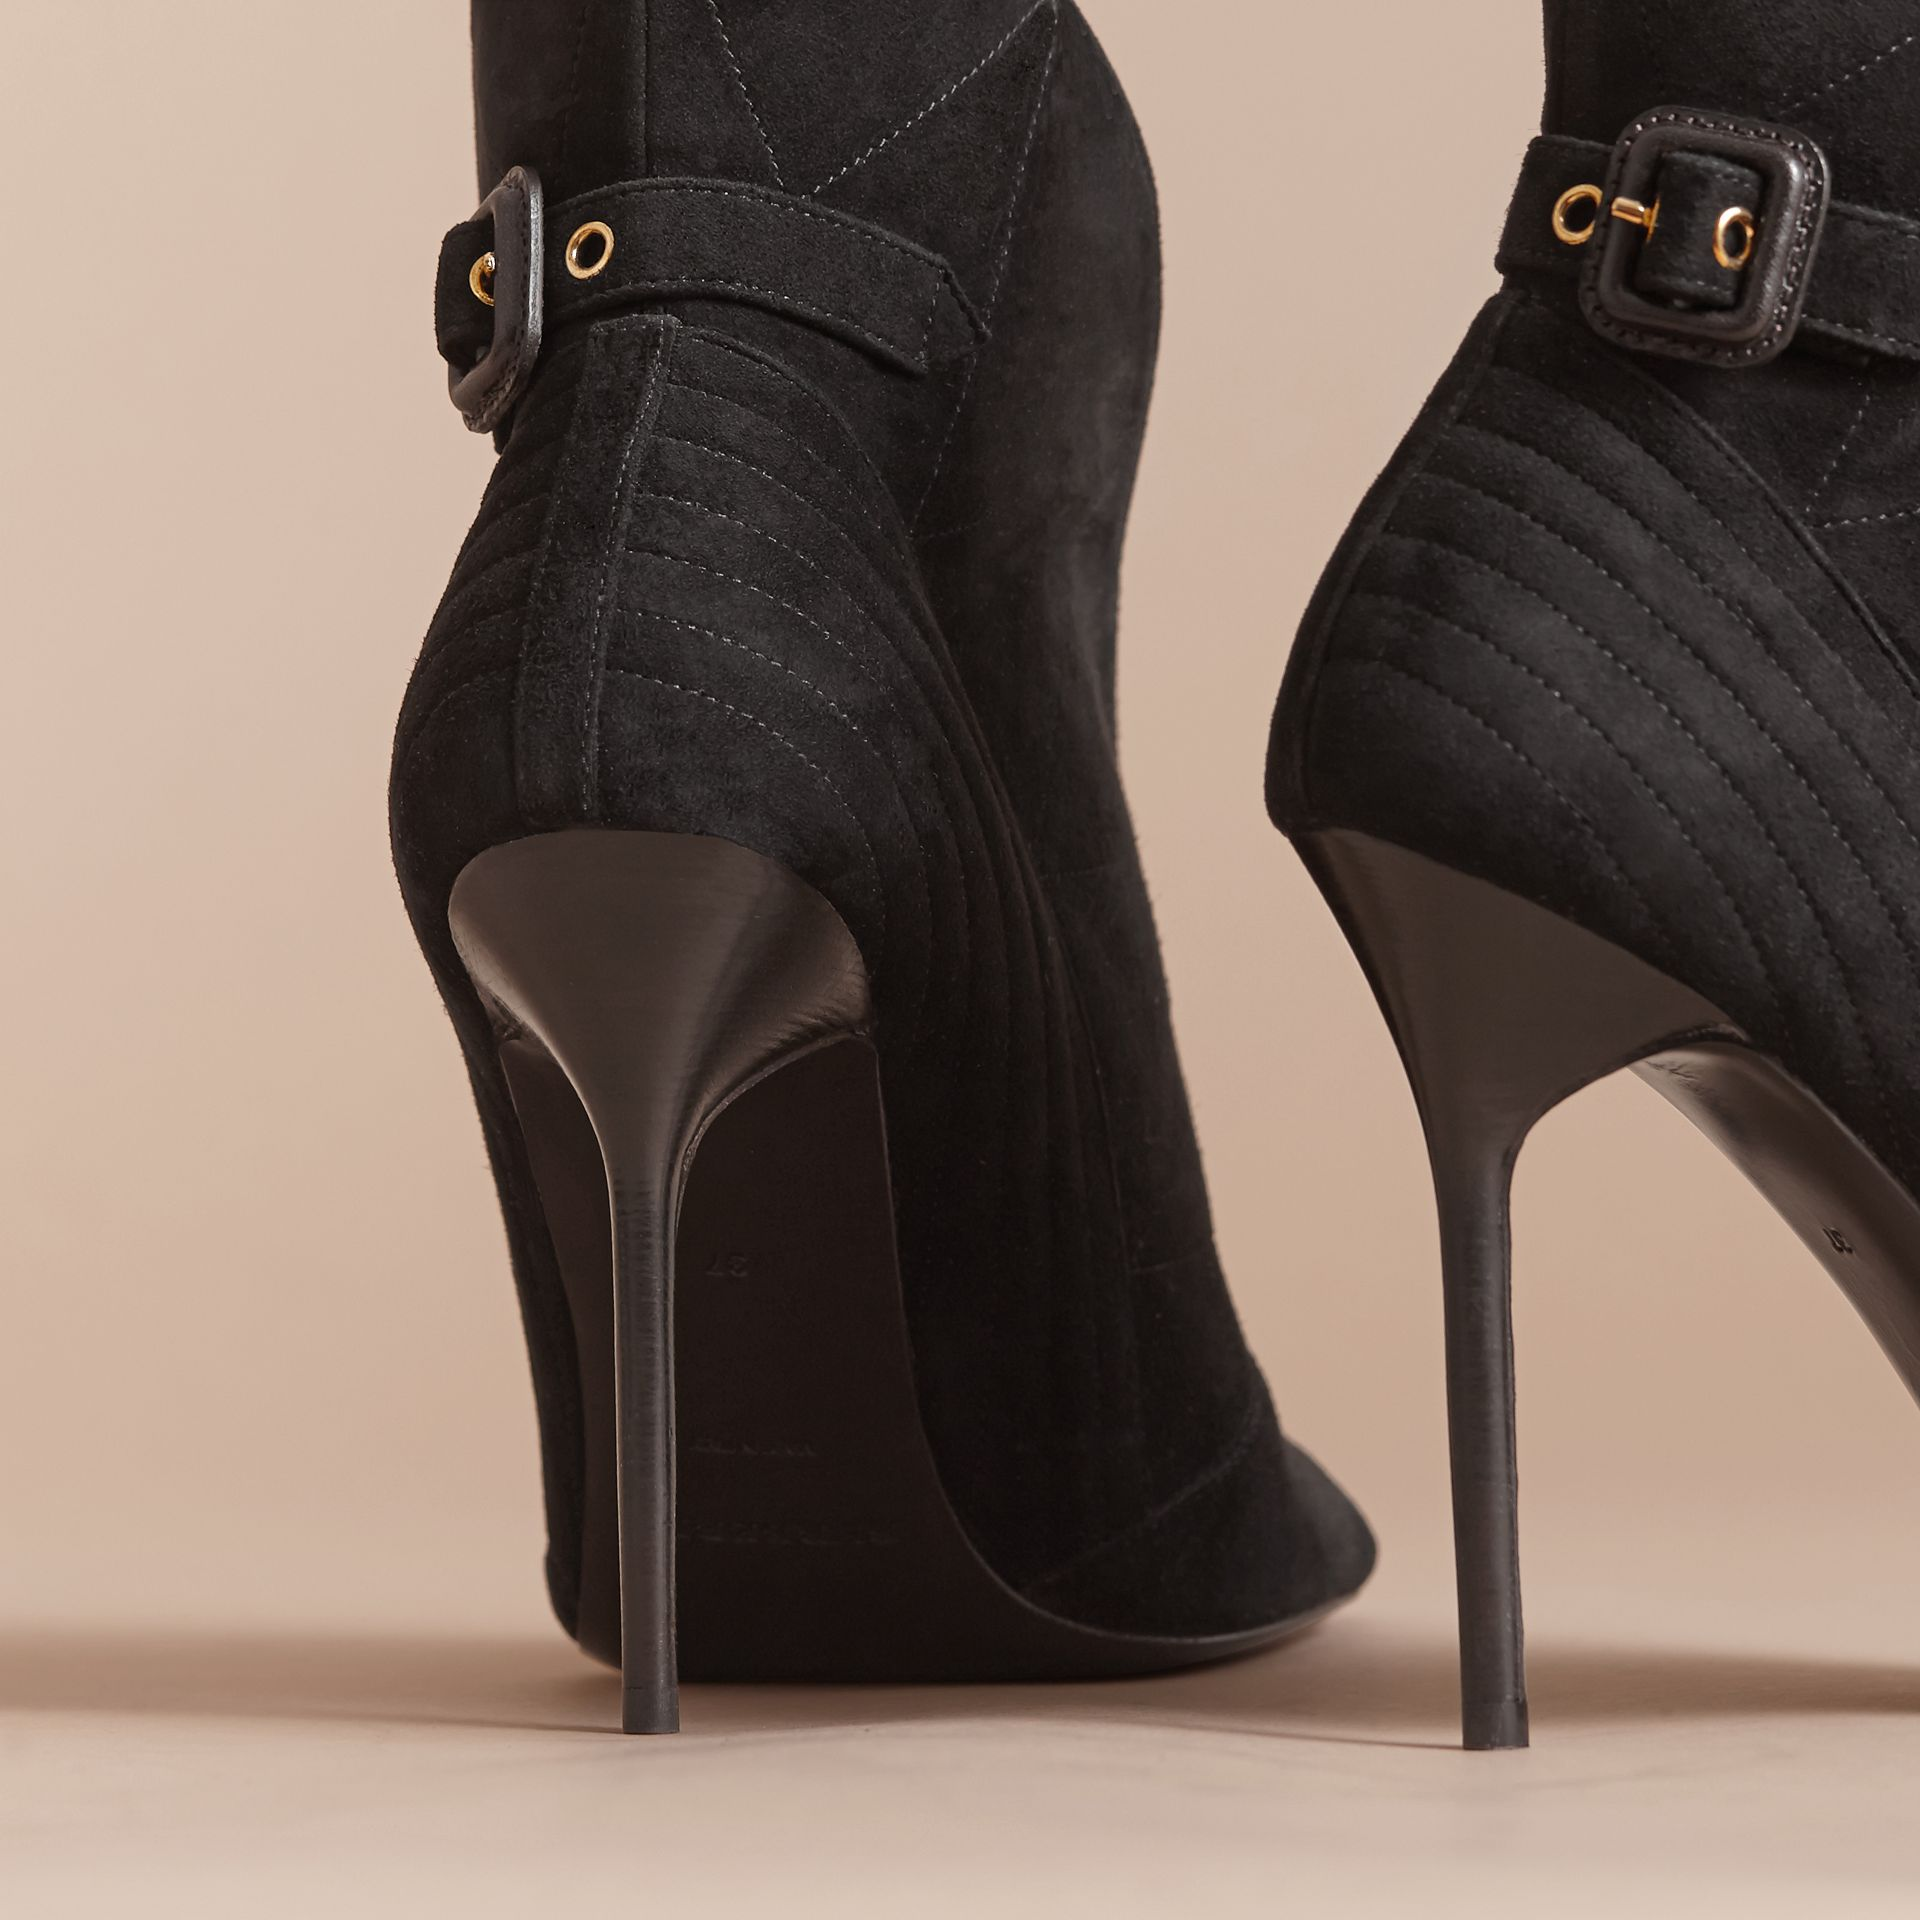 Buckle Detail Suede Peep-toe Ankle Boots in Black - Women | Burberry Hong Kong - gallery image 4